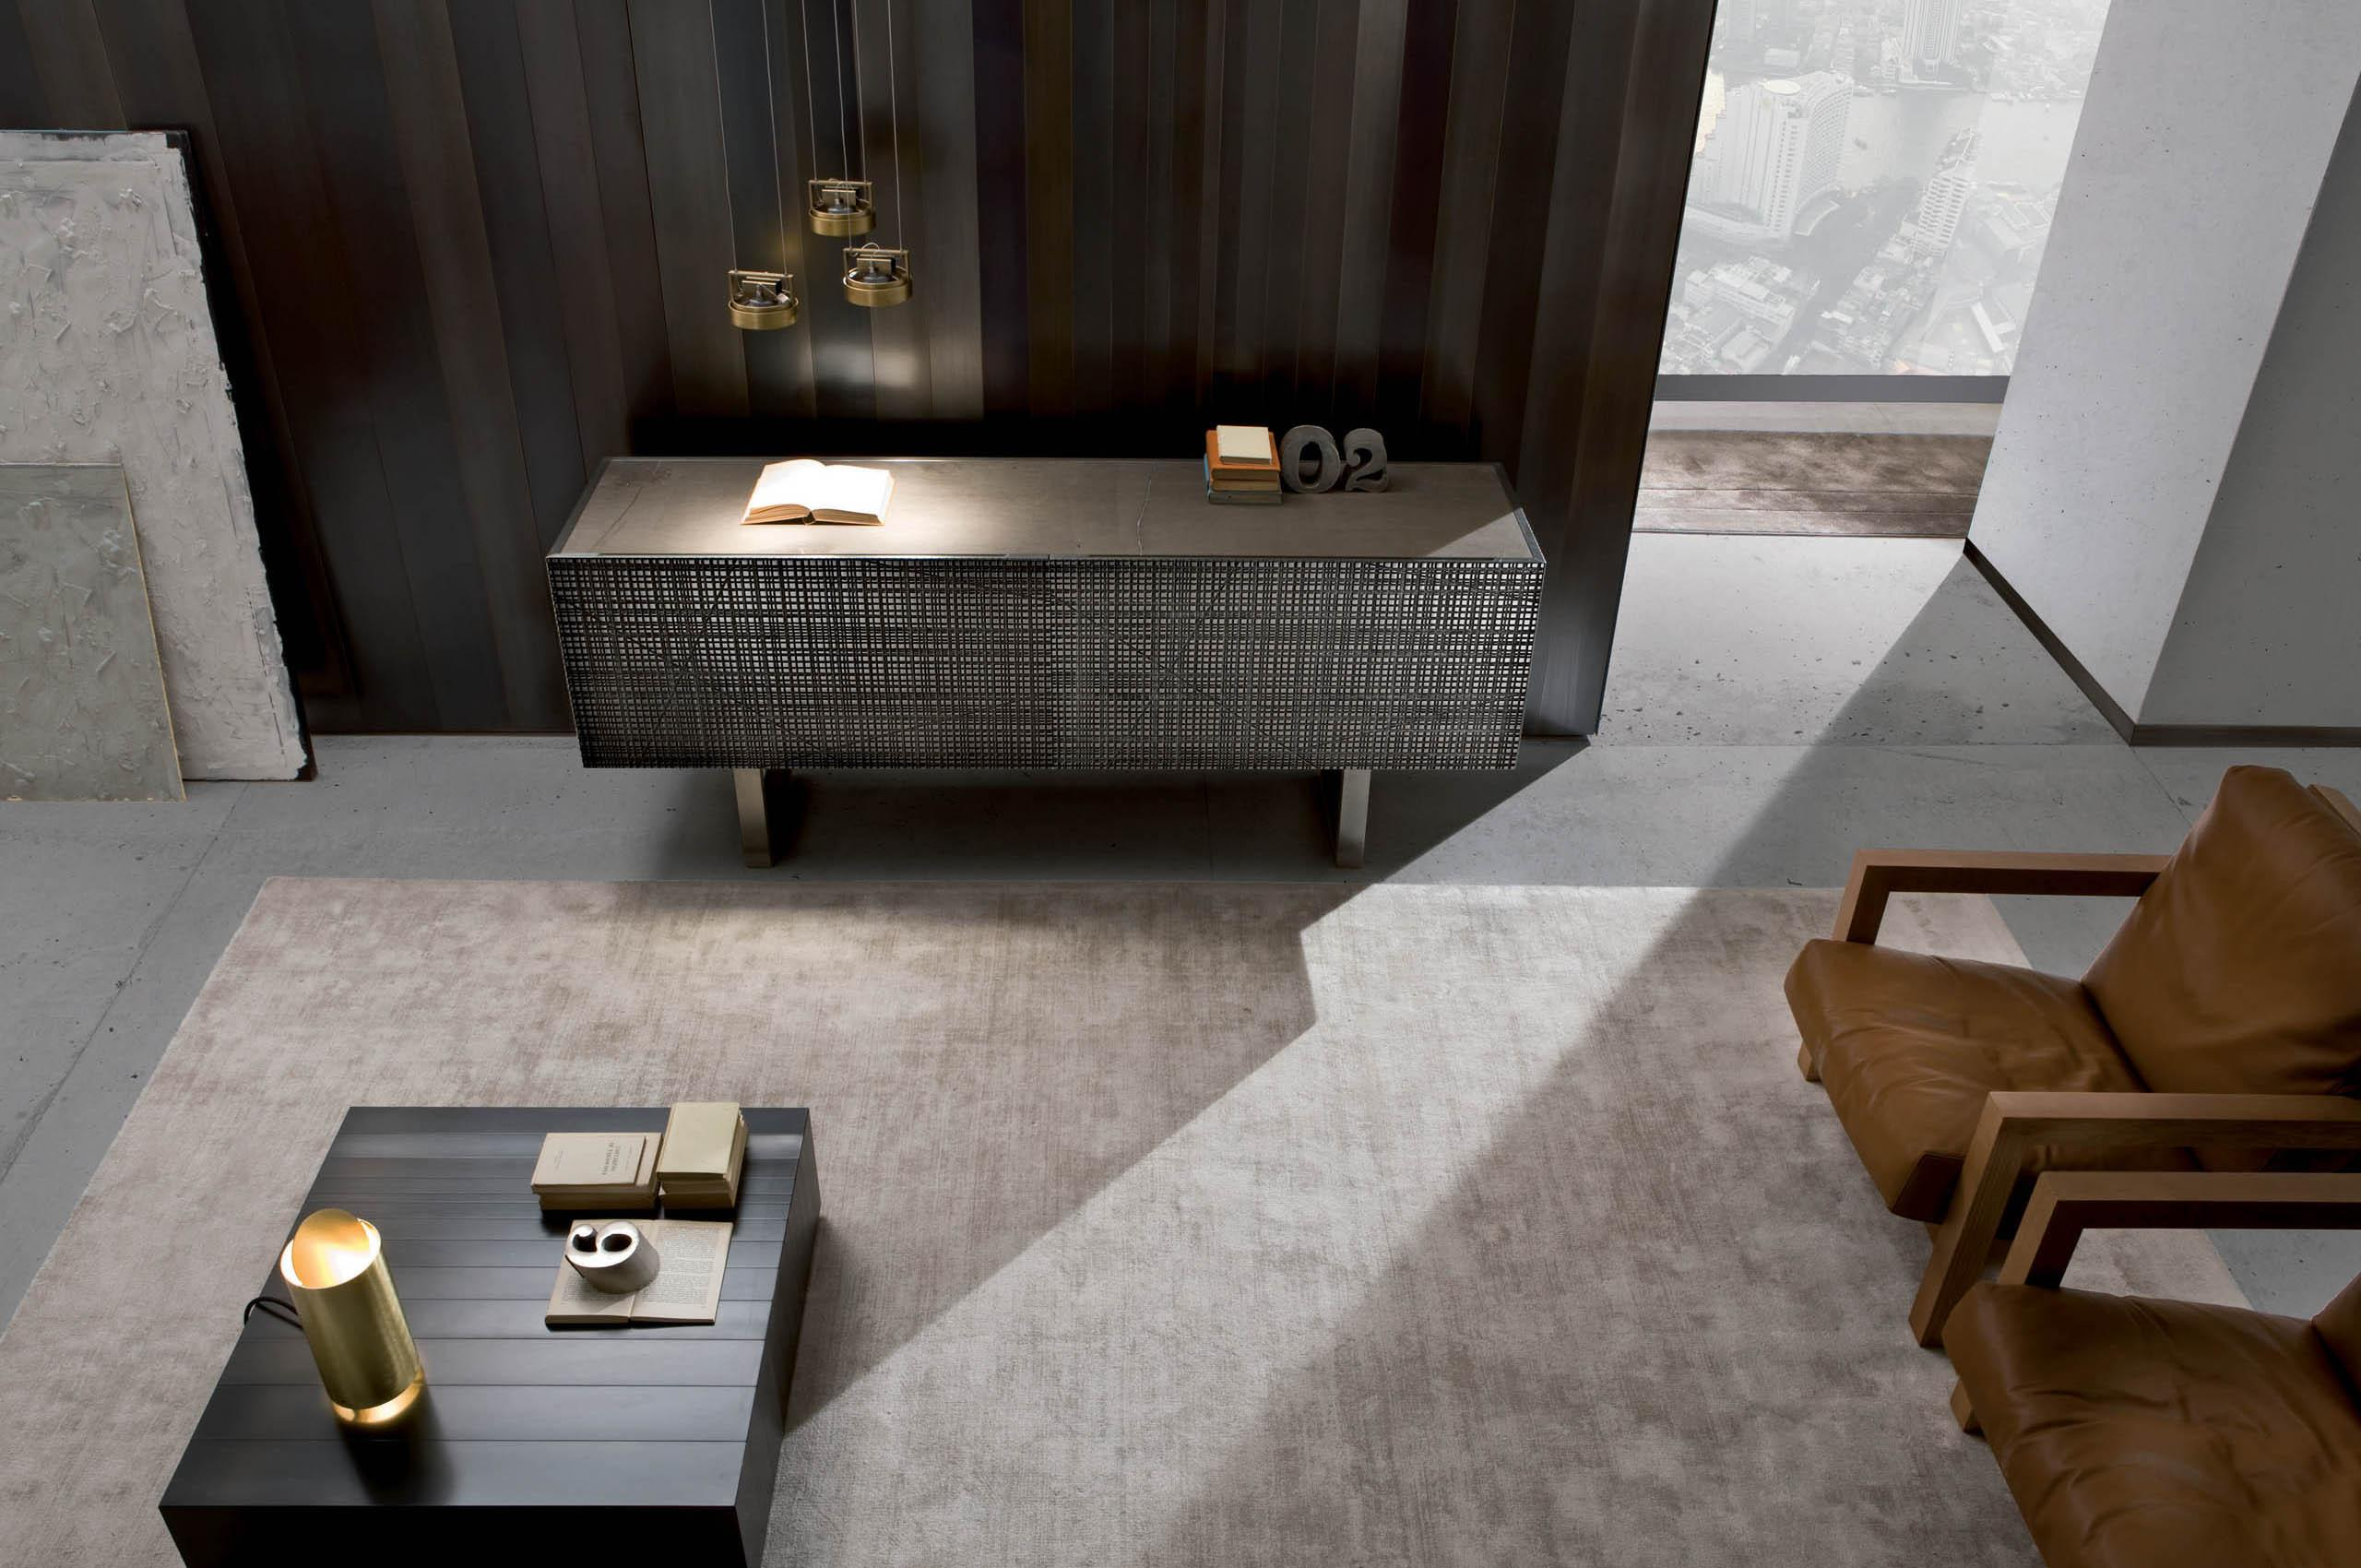 Black furniture in wood, metal, marble and glass for a minimal luxury interior design